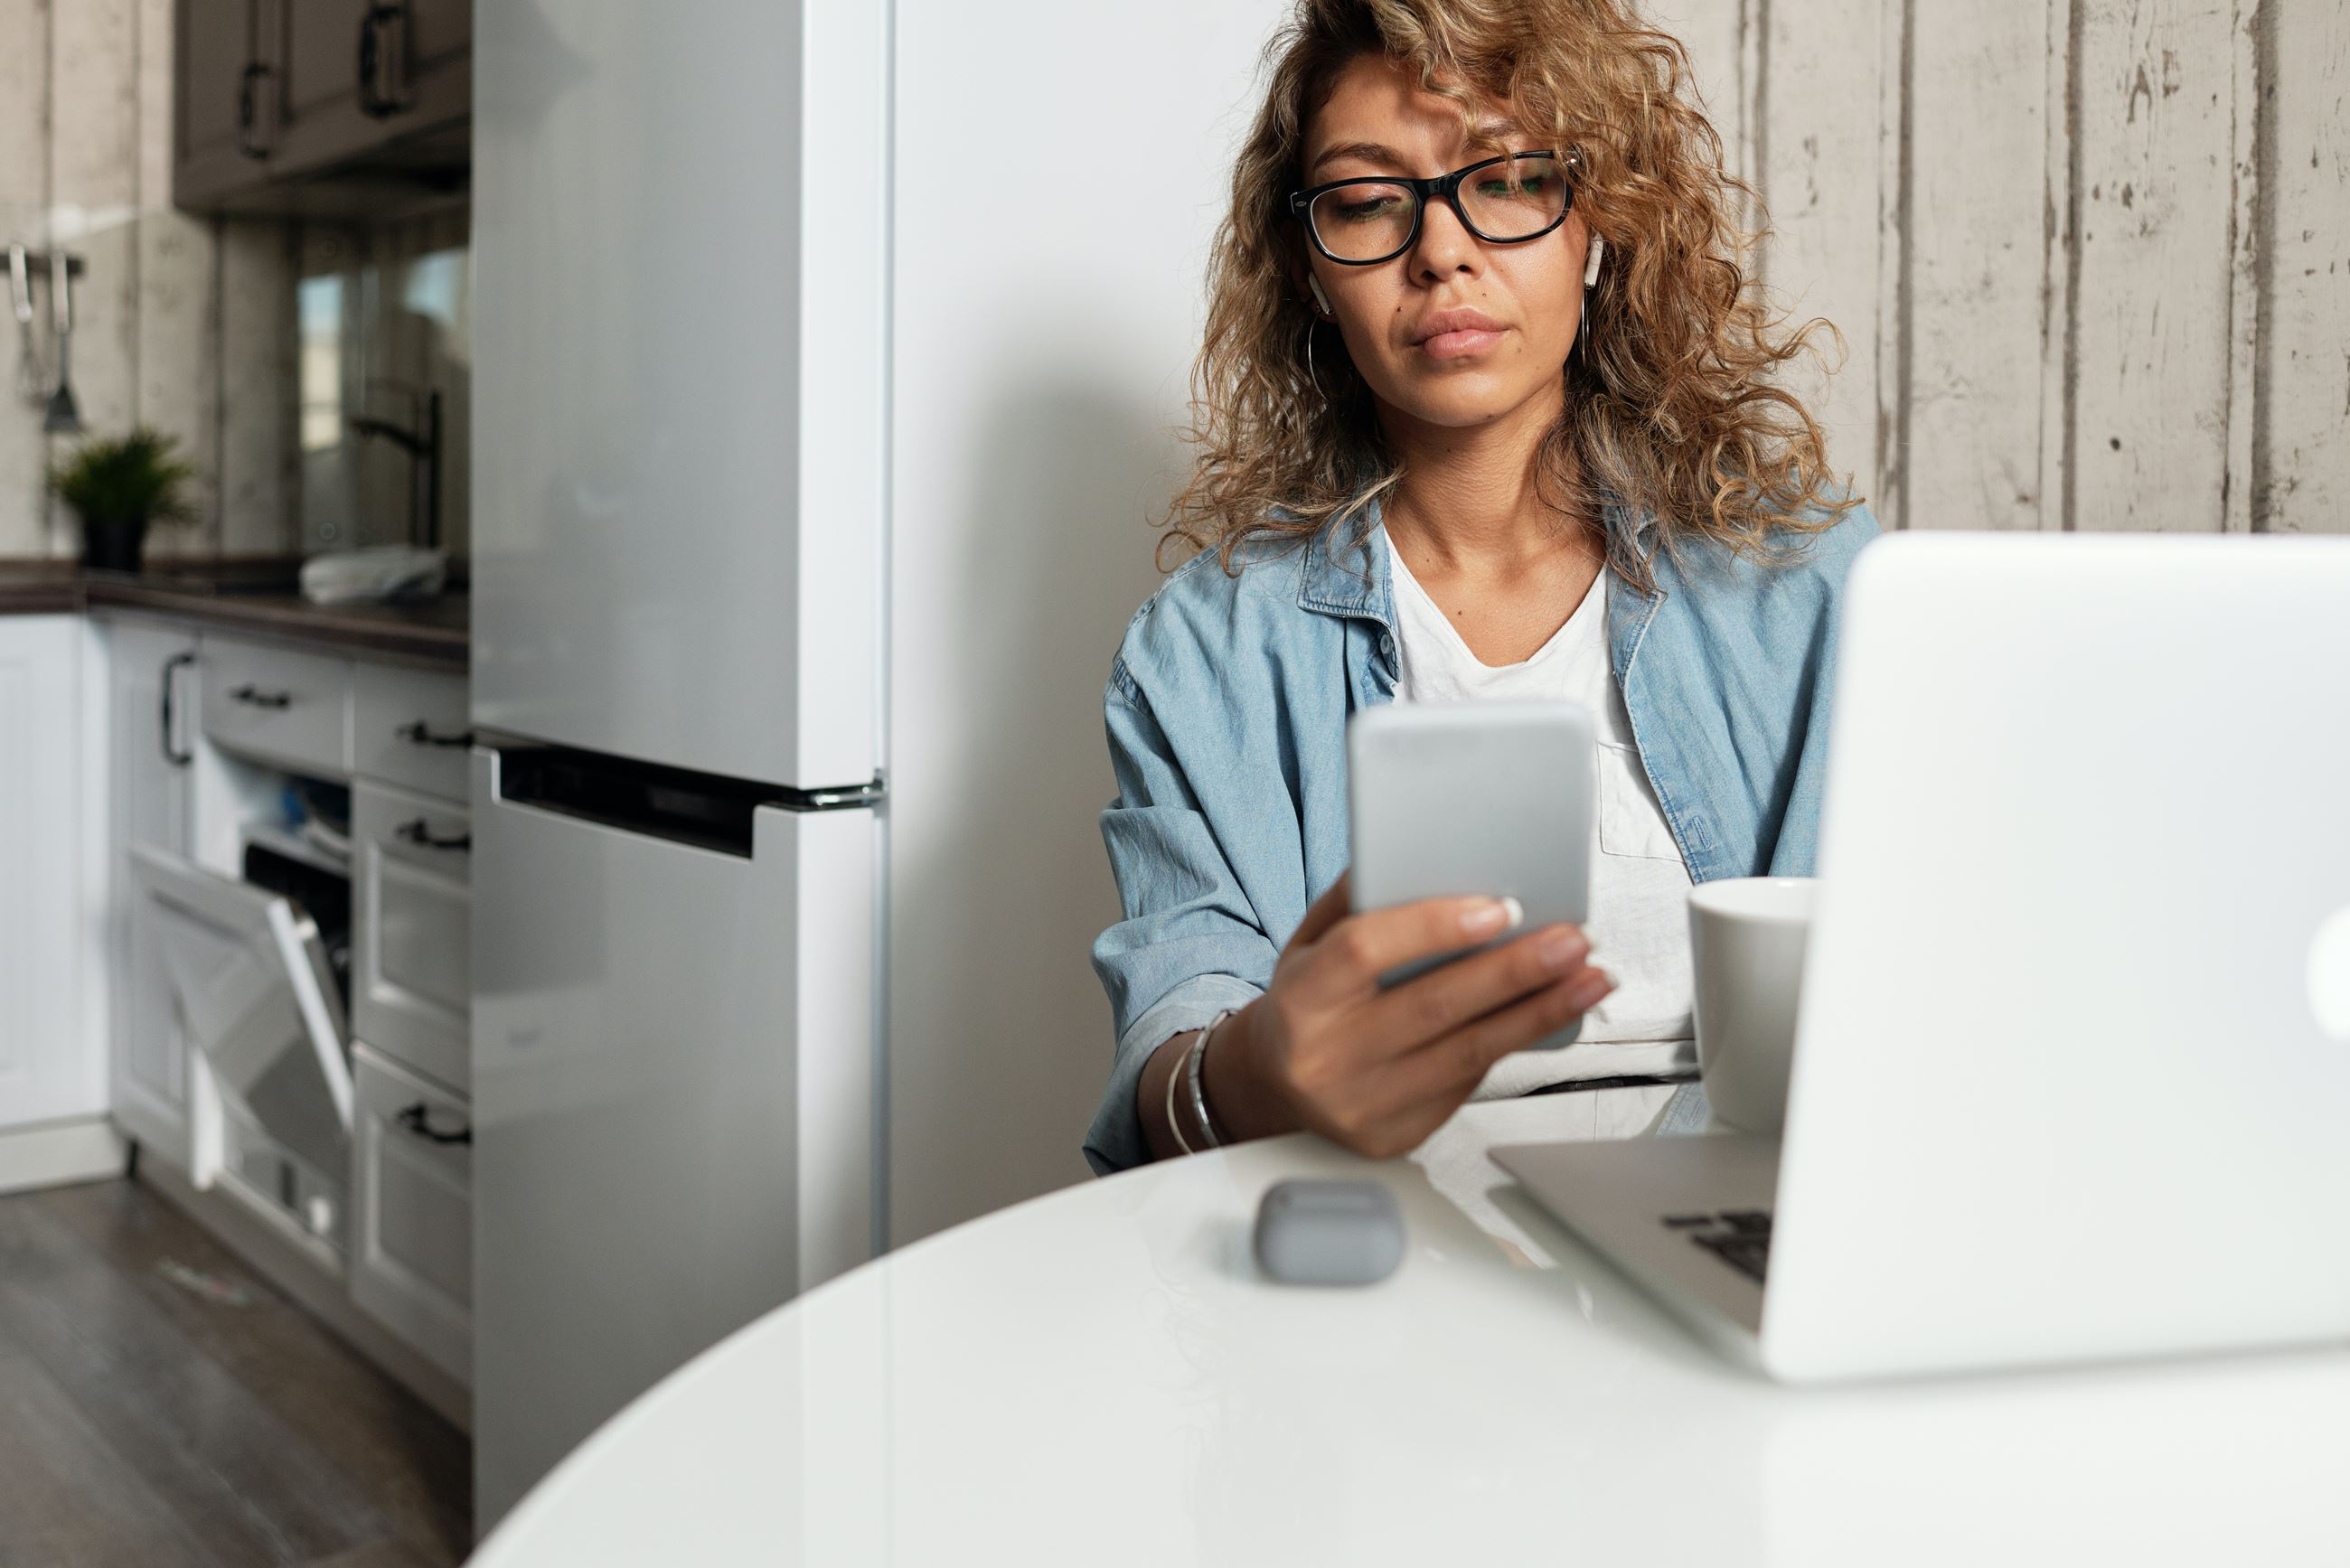 A woman looking at her phone sits at a kitchen table with her laptop open